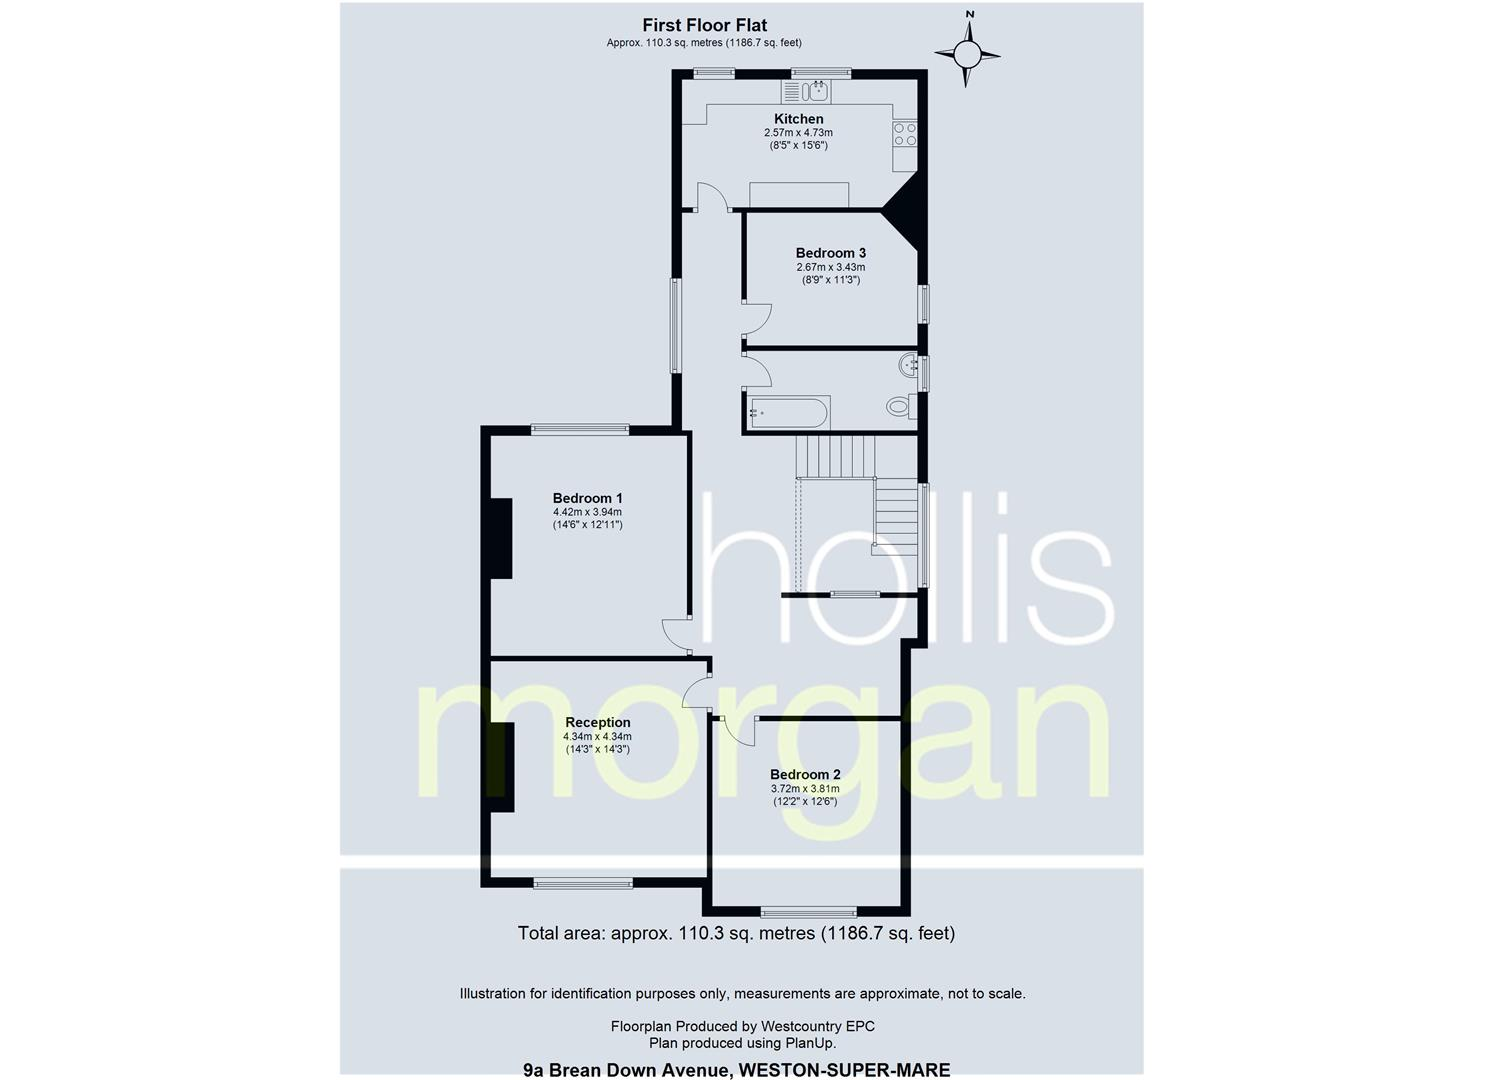 Floorplans For Huge First Floor Flat with Garden and Double Garage